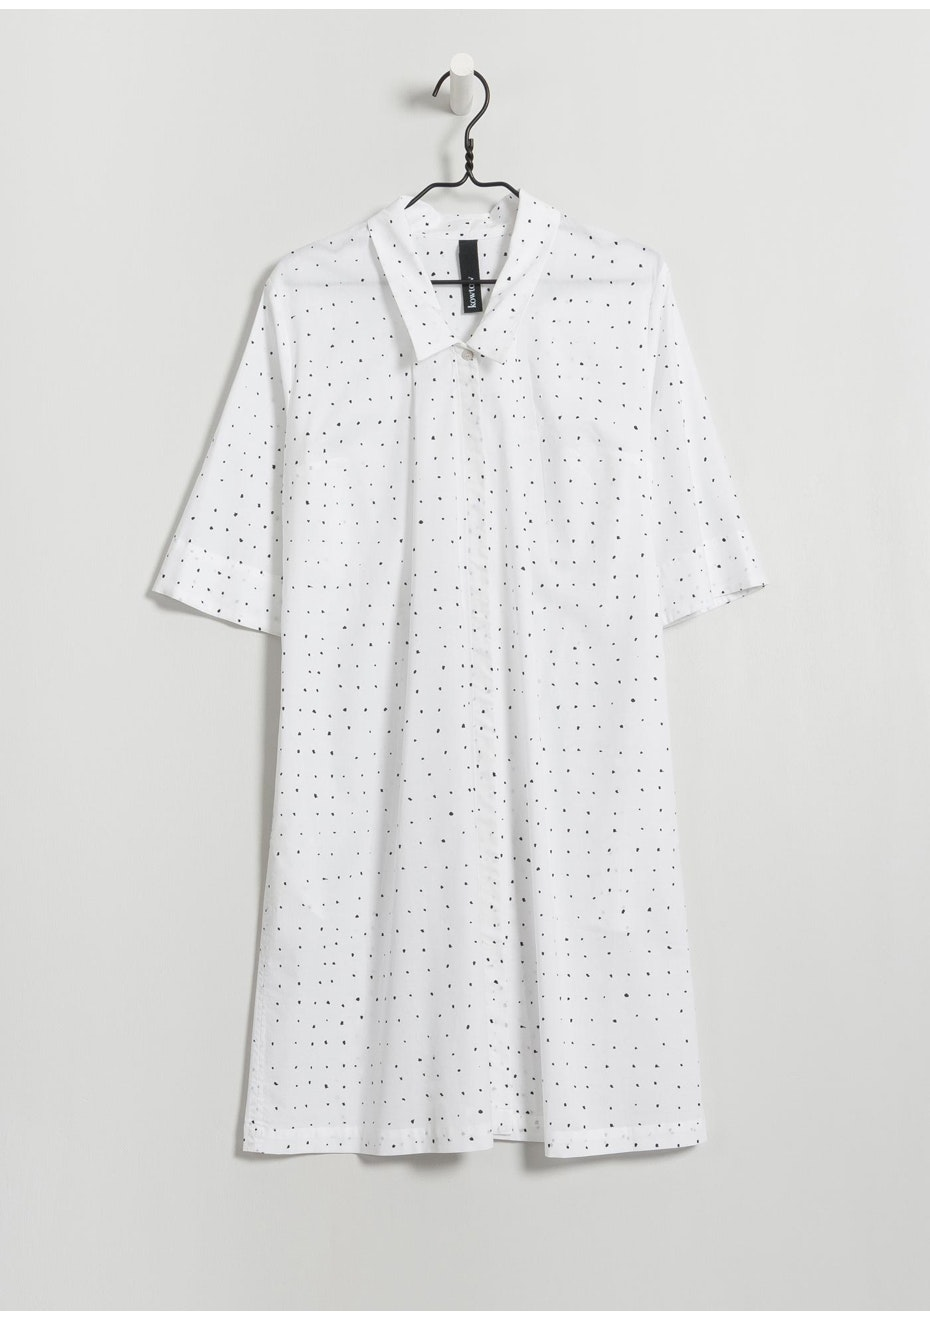 Kowtow - Lacquer Dress - Dots on White